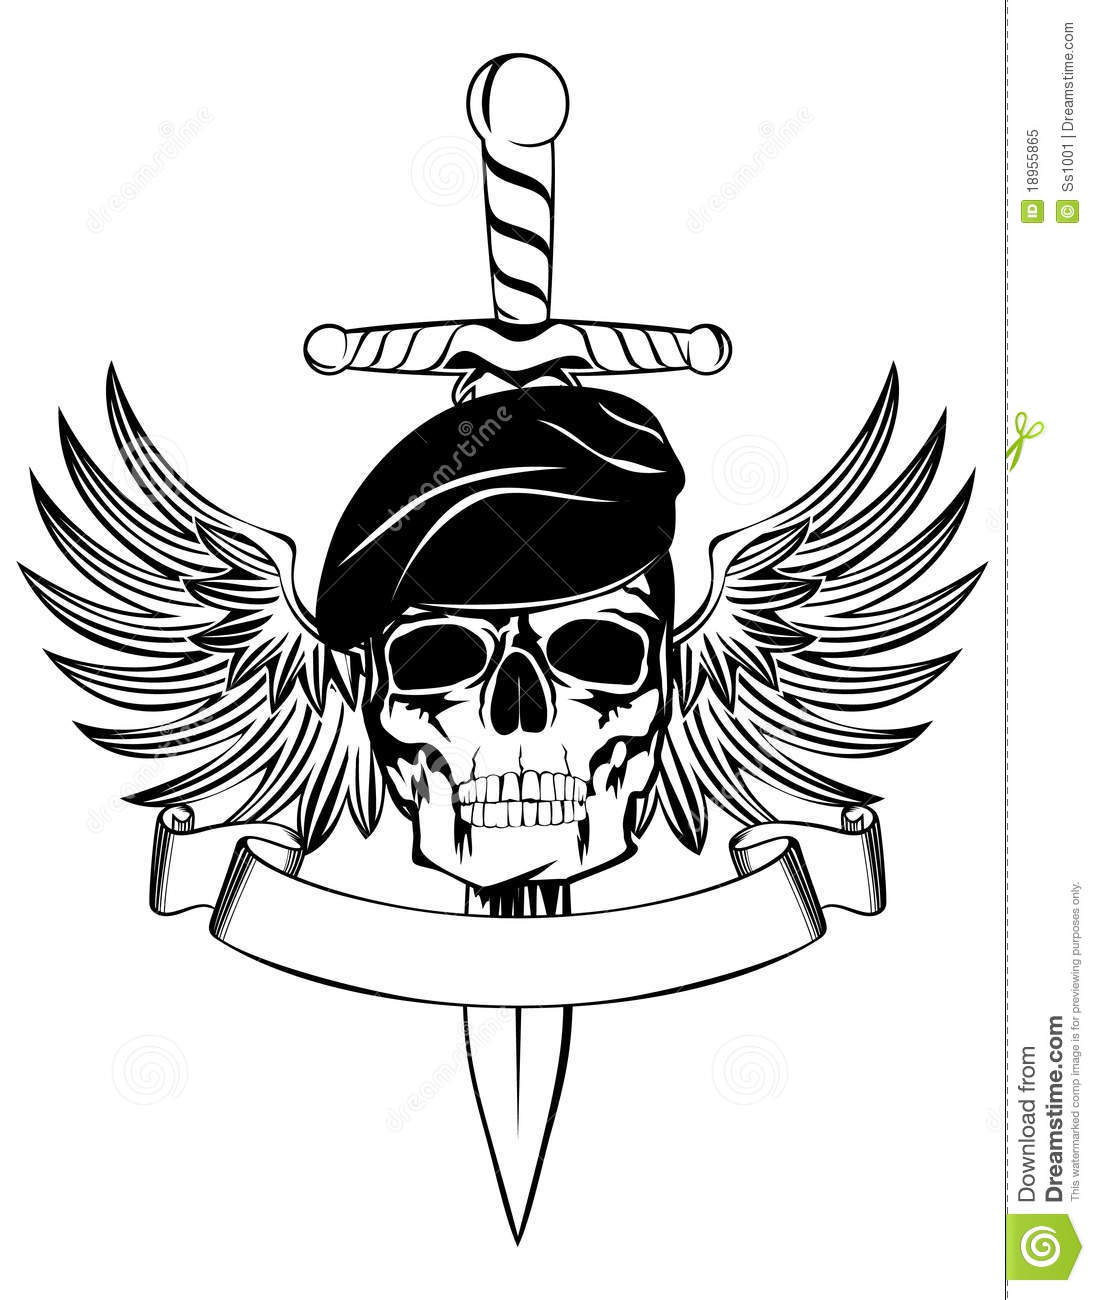 Skull In Beret Royalty Free Stock Photo